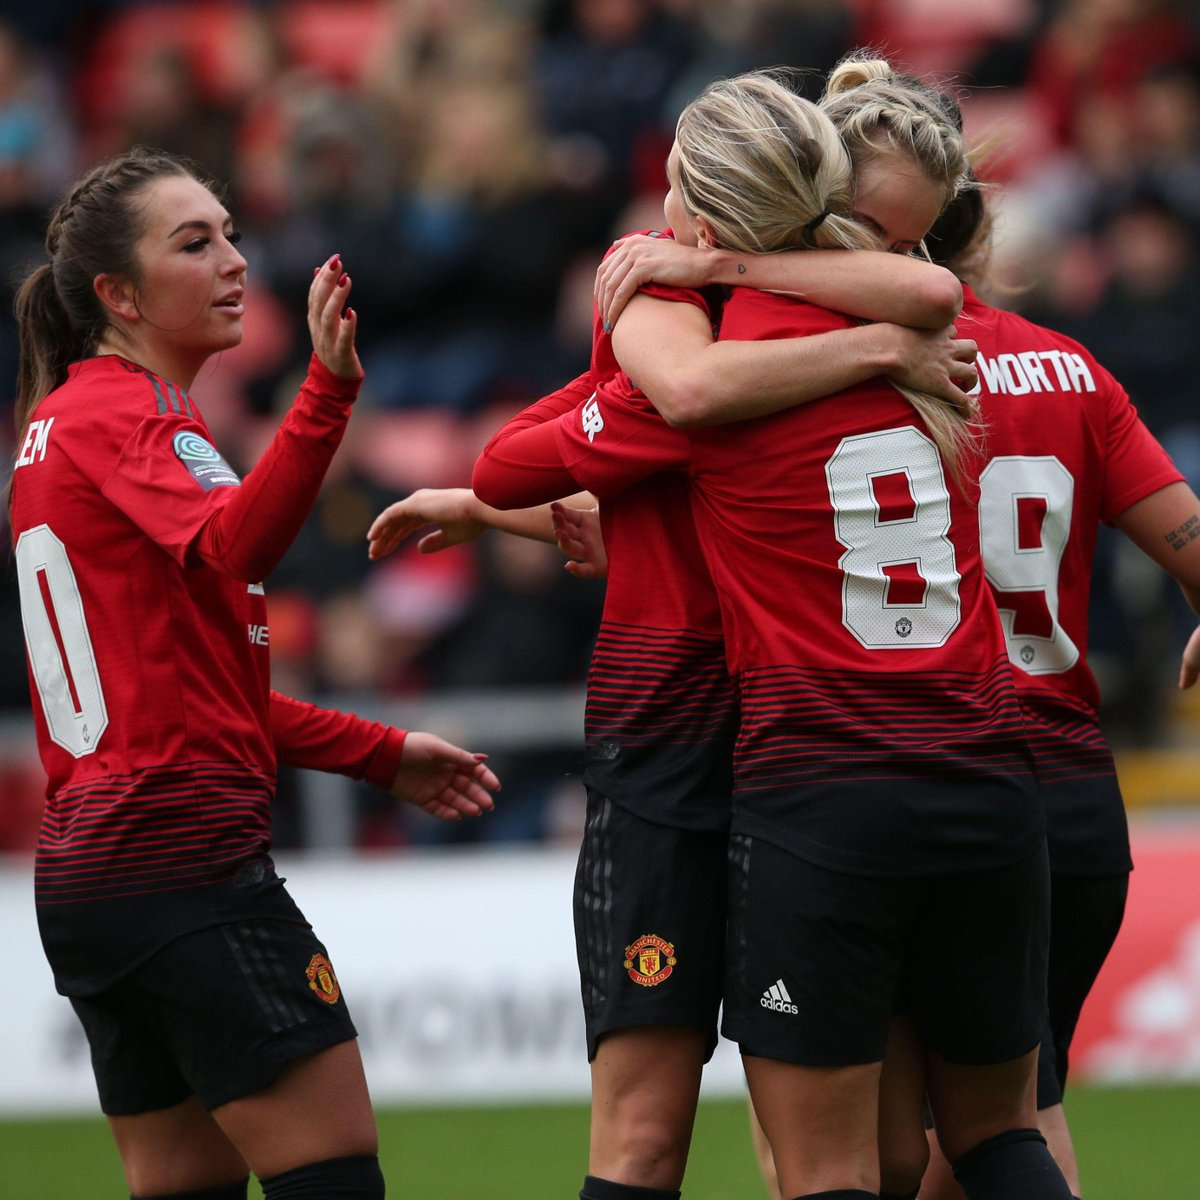 Have a good weekend, #MUWomen fans — we hope to see you on Sunday! 🔴 #FridayFeeling